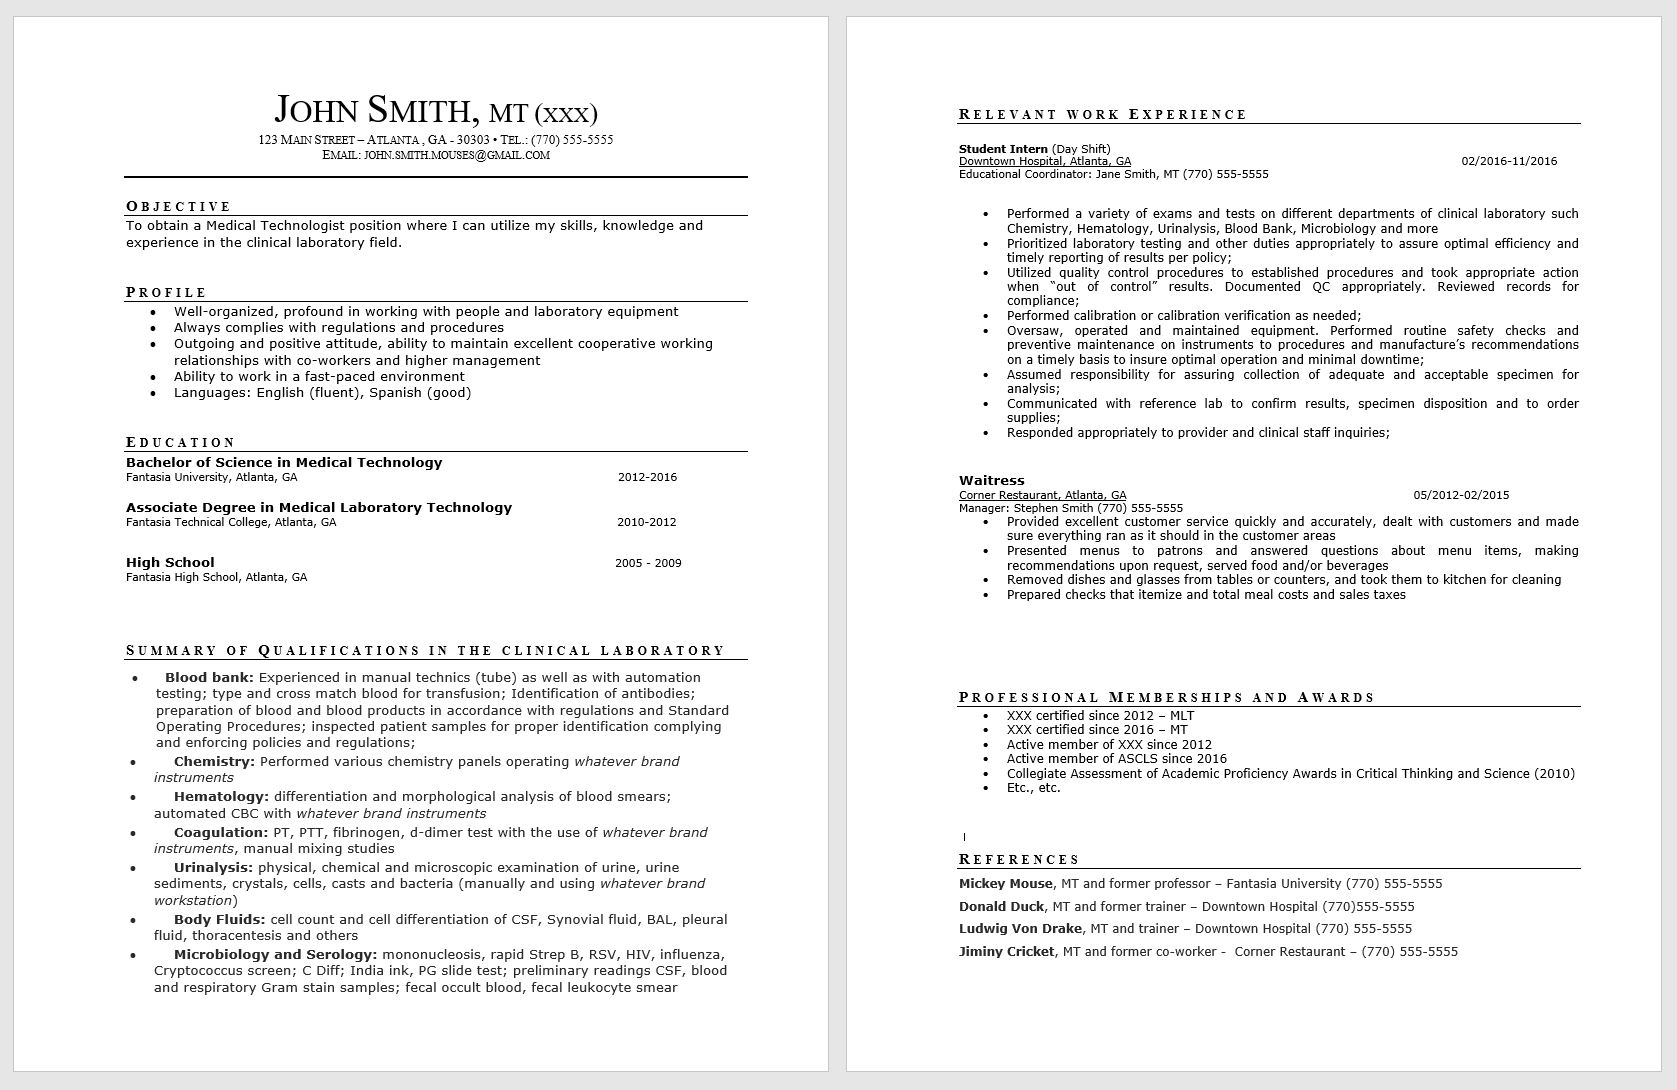 résumé guide society for clinical laboratory science state manager resume johnsmith Resume Laboratory Manager Resume